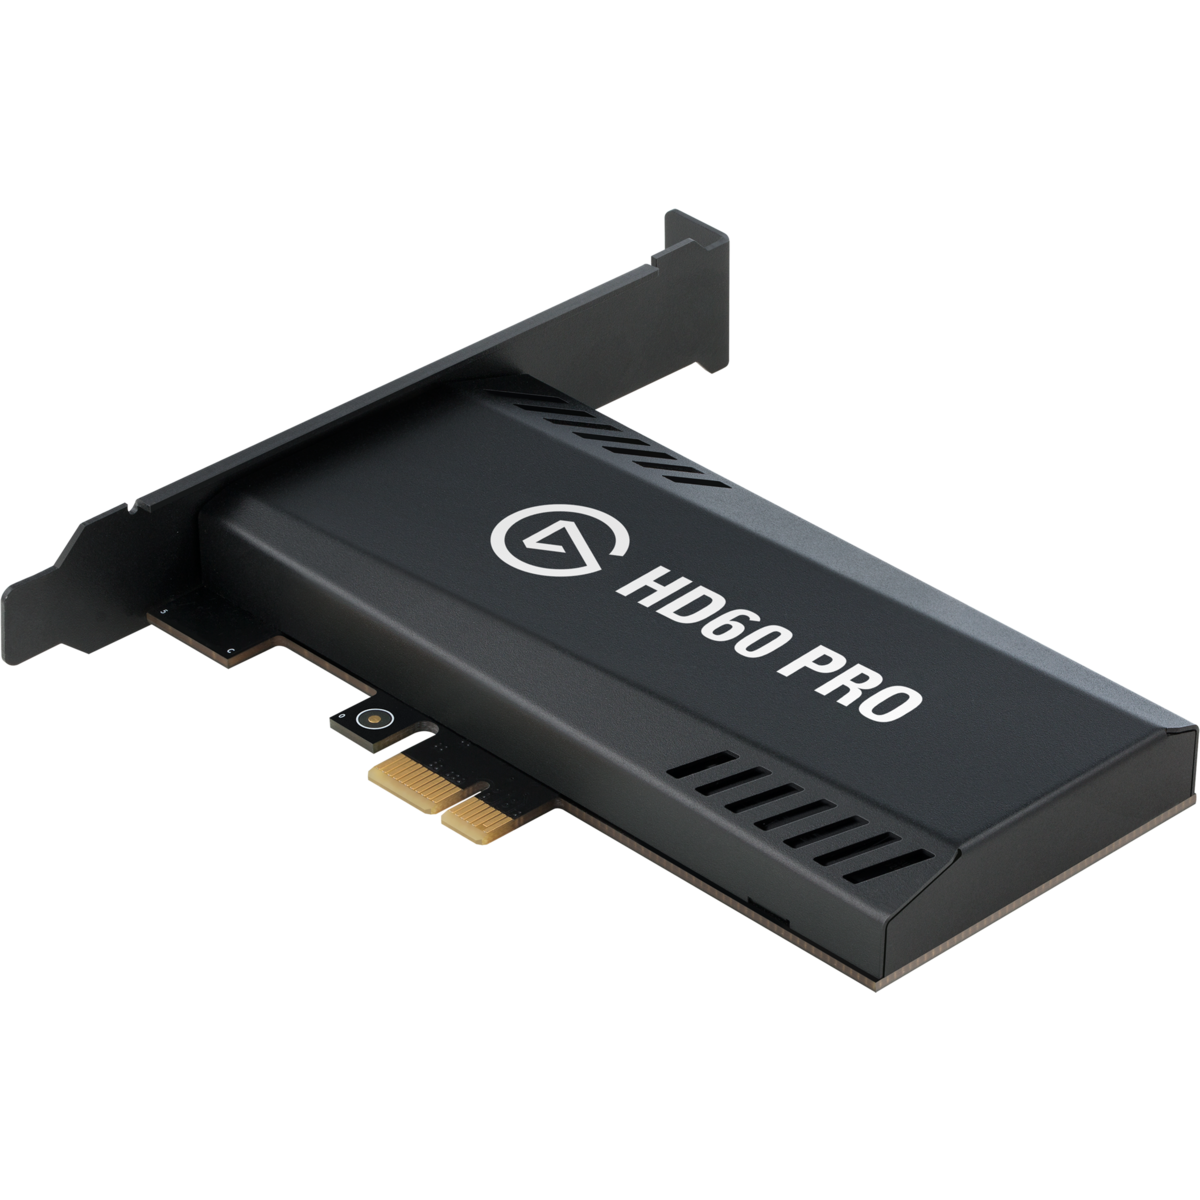 Gallery Game Capture HD60 Pro Device 02